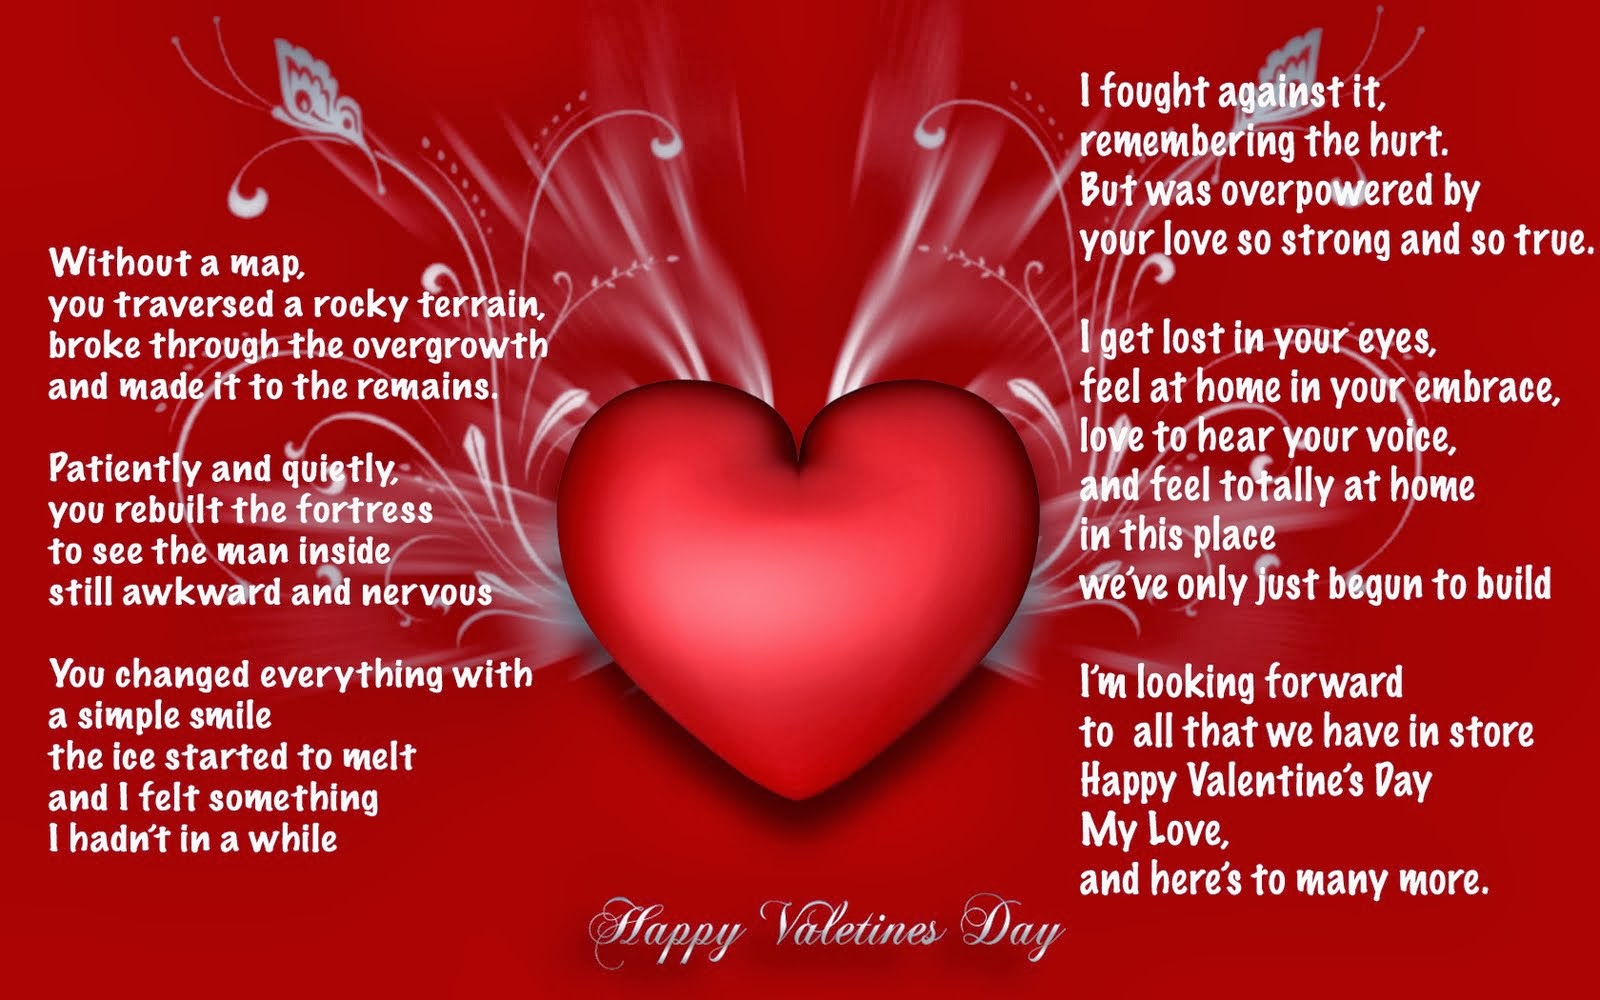 famous greeting valentines day poems wishes - Love Poems For Valentines Day